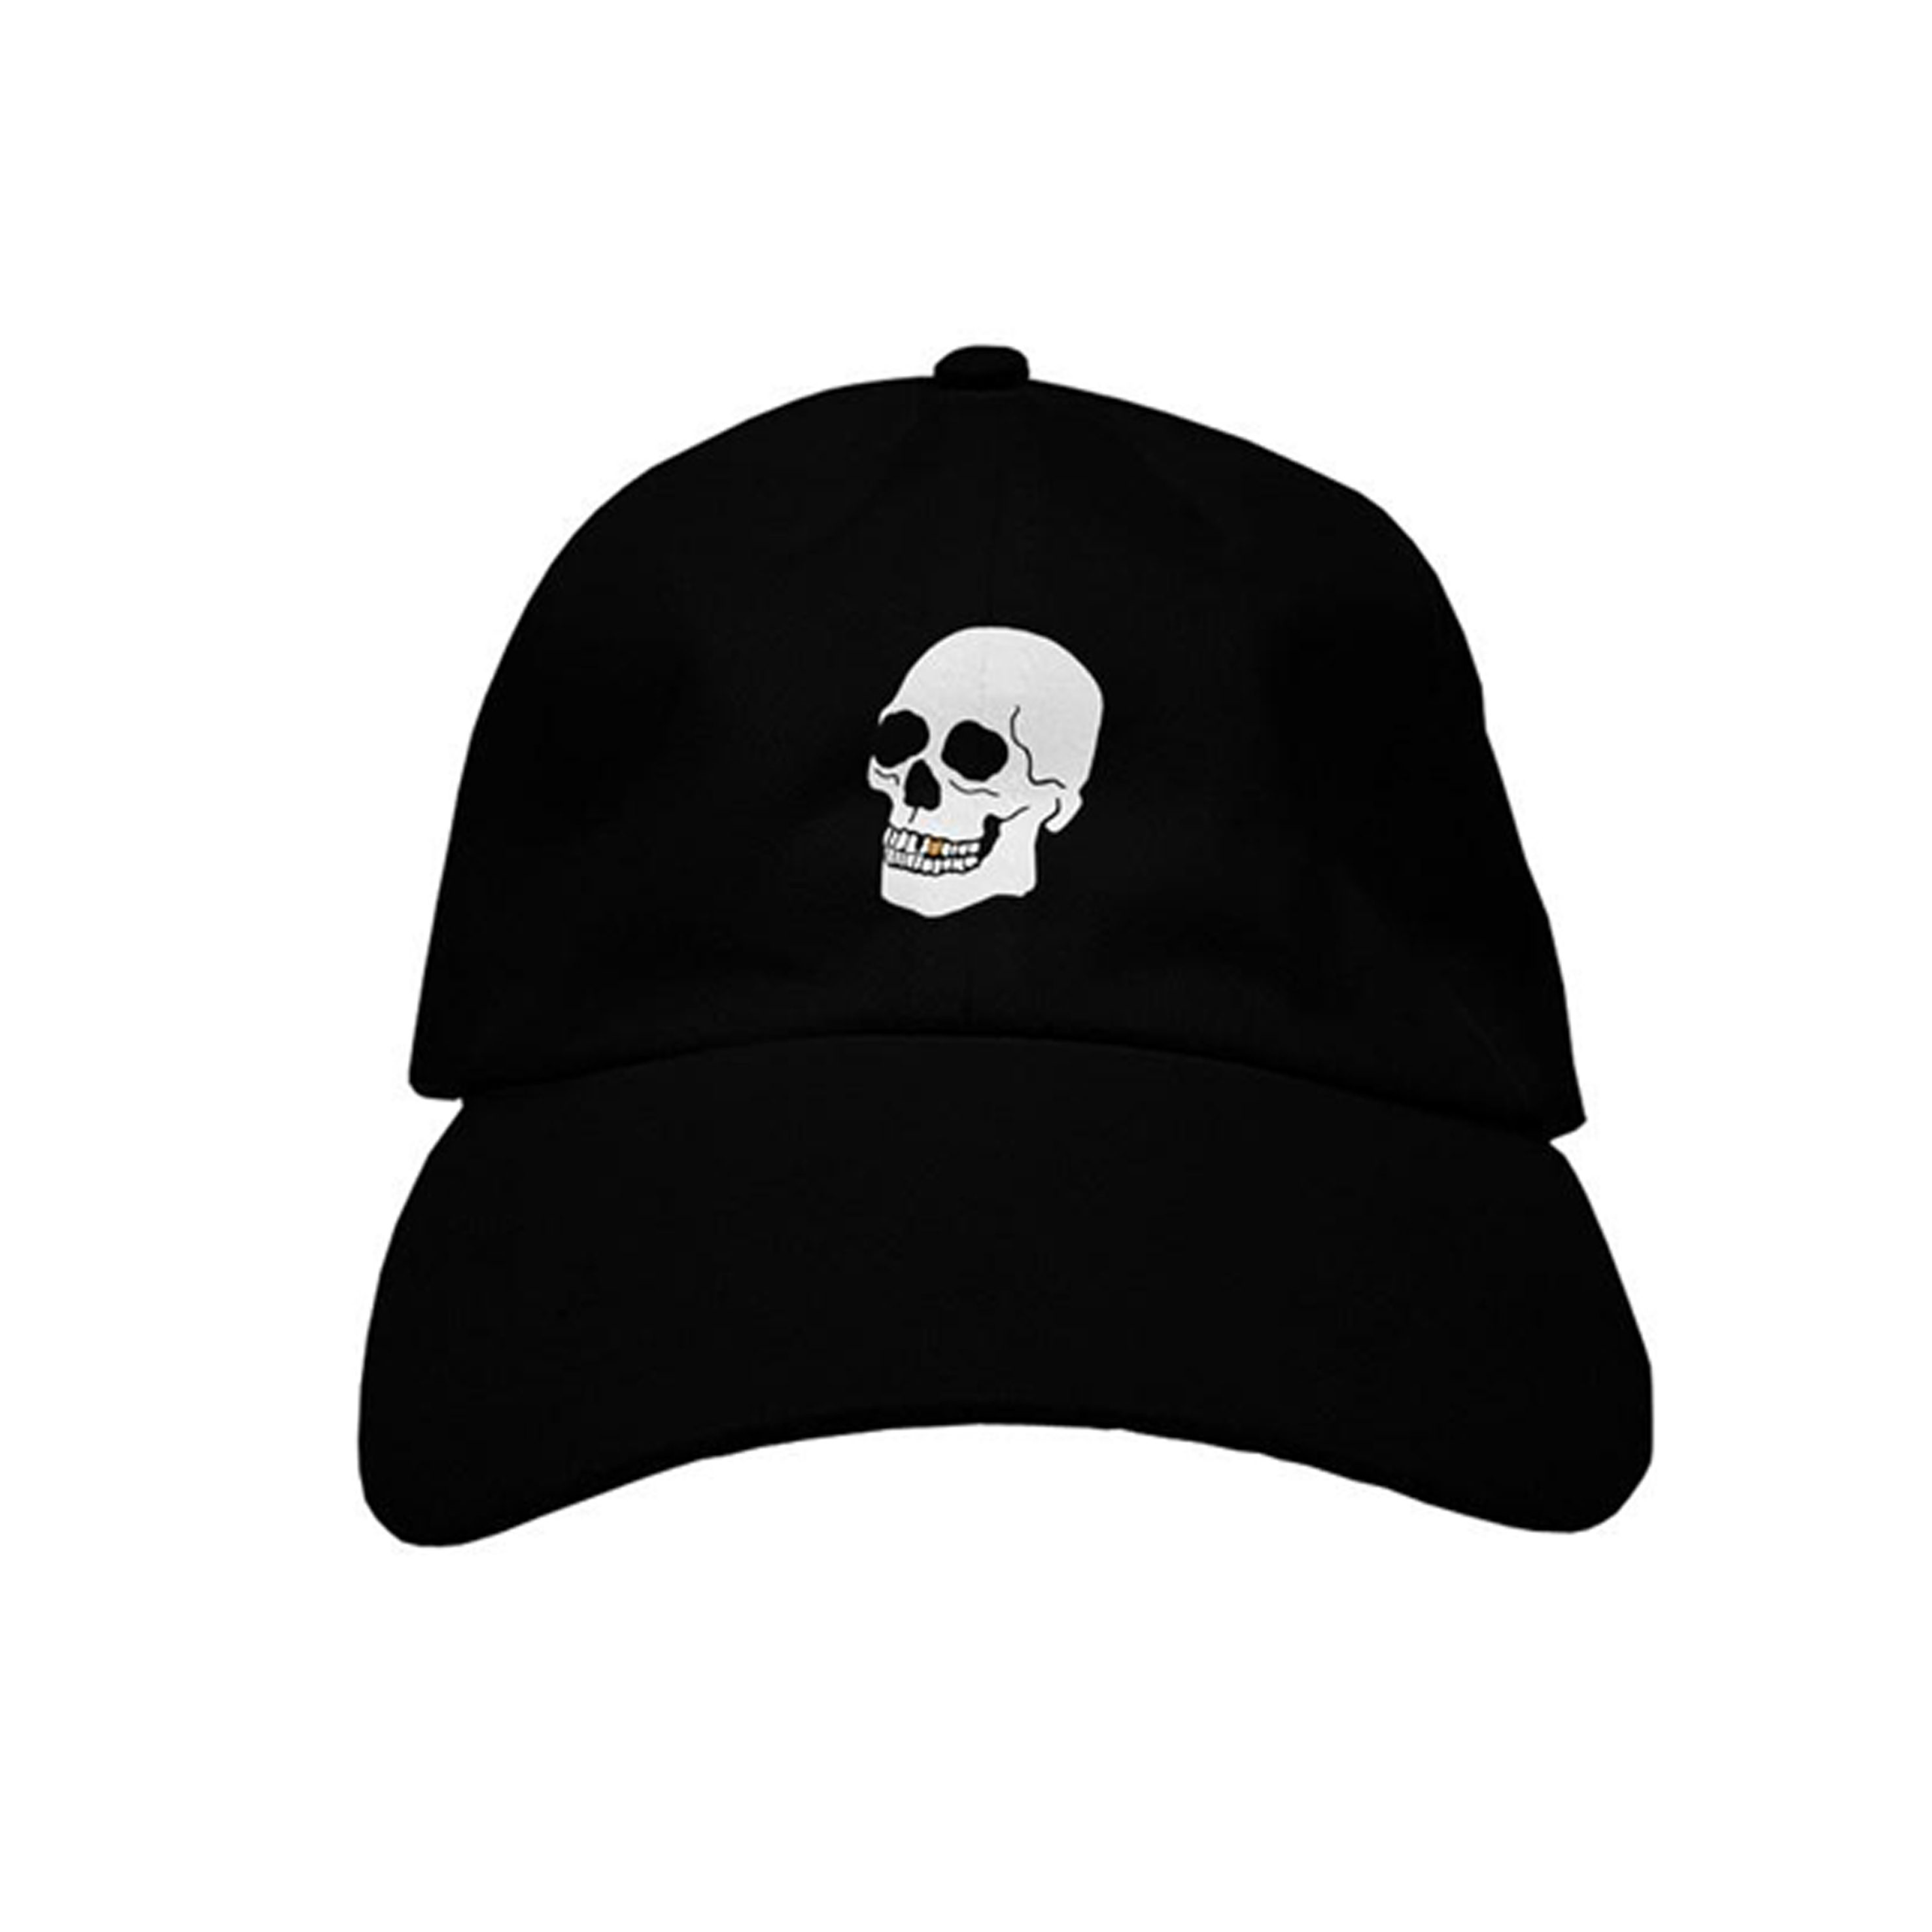 Skully embroidered dad hat